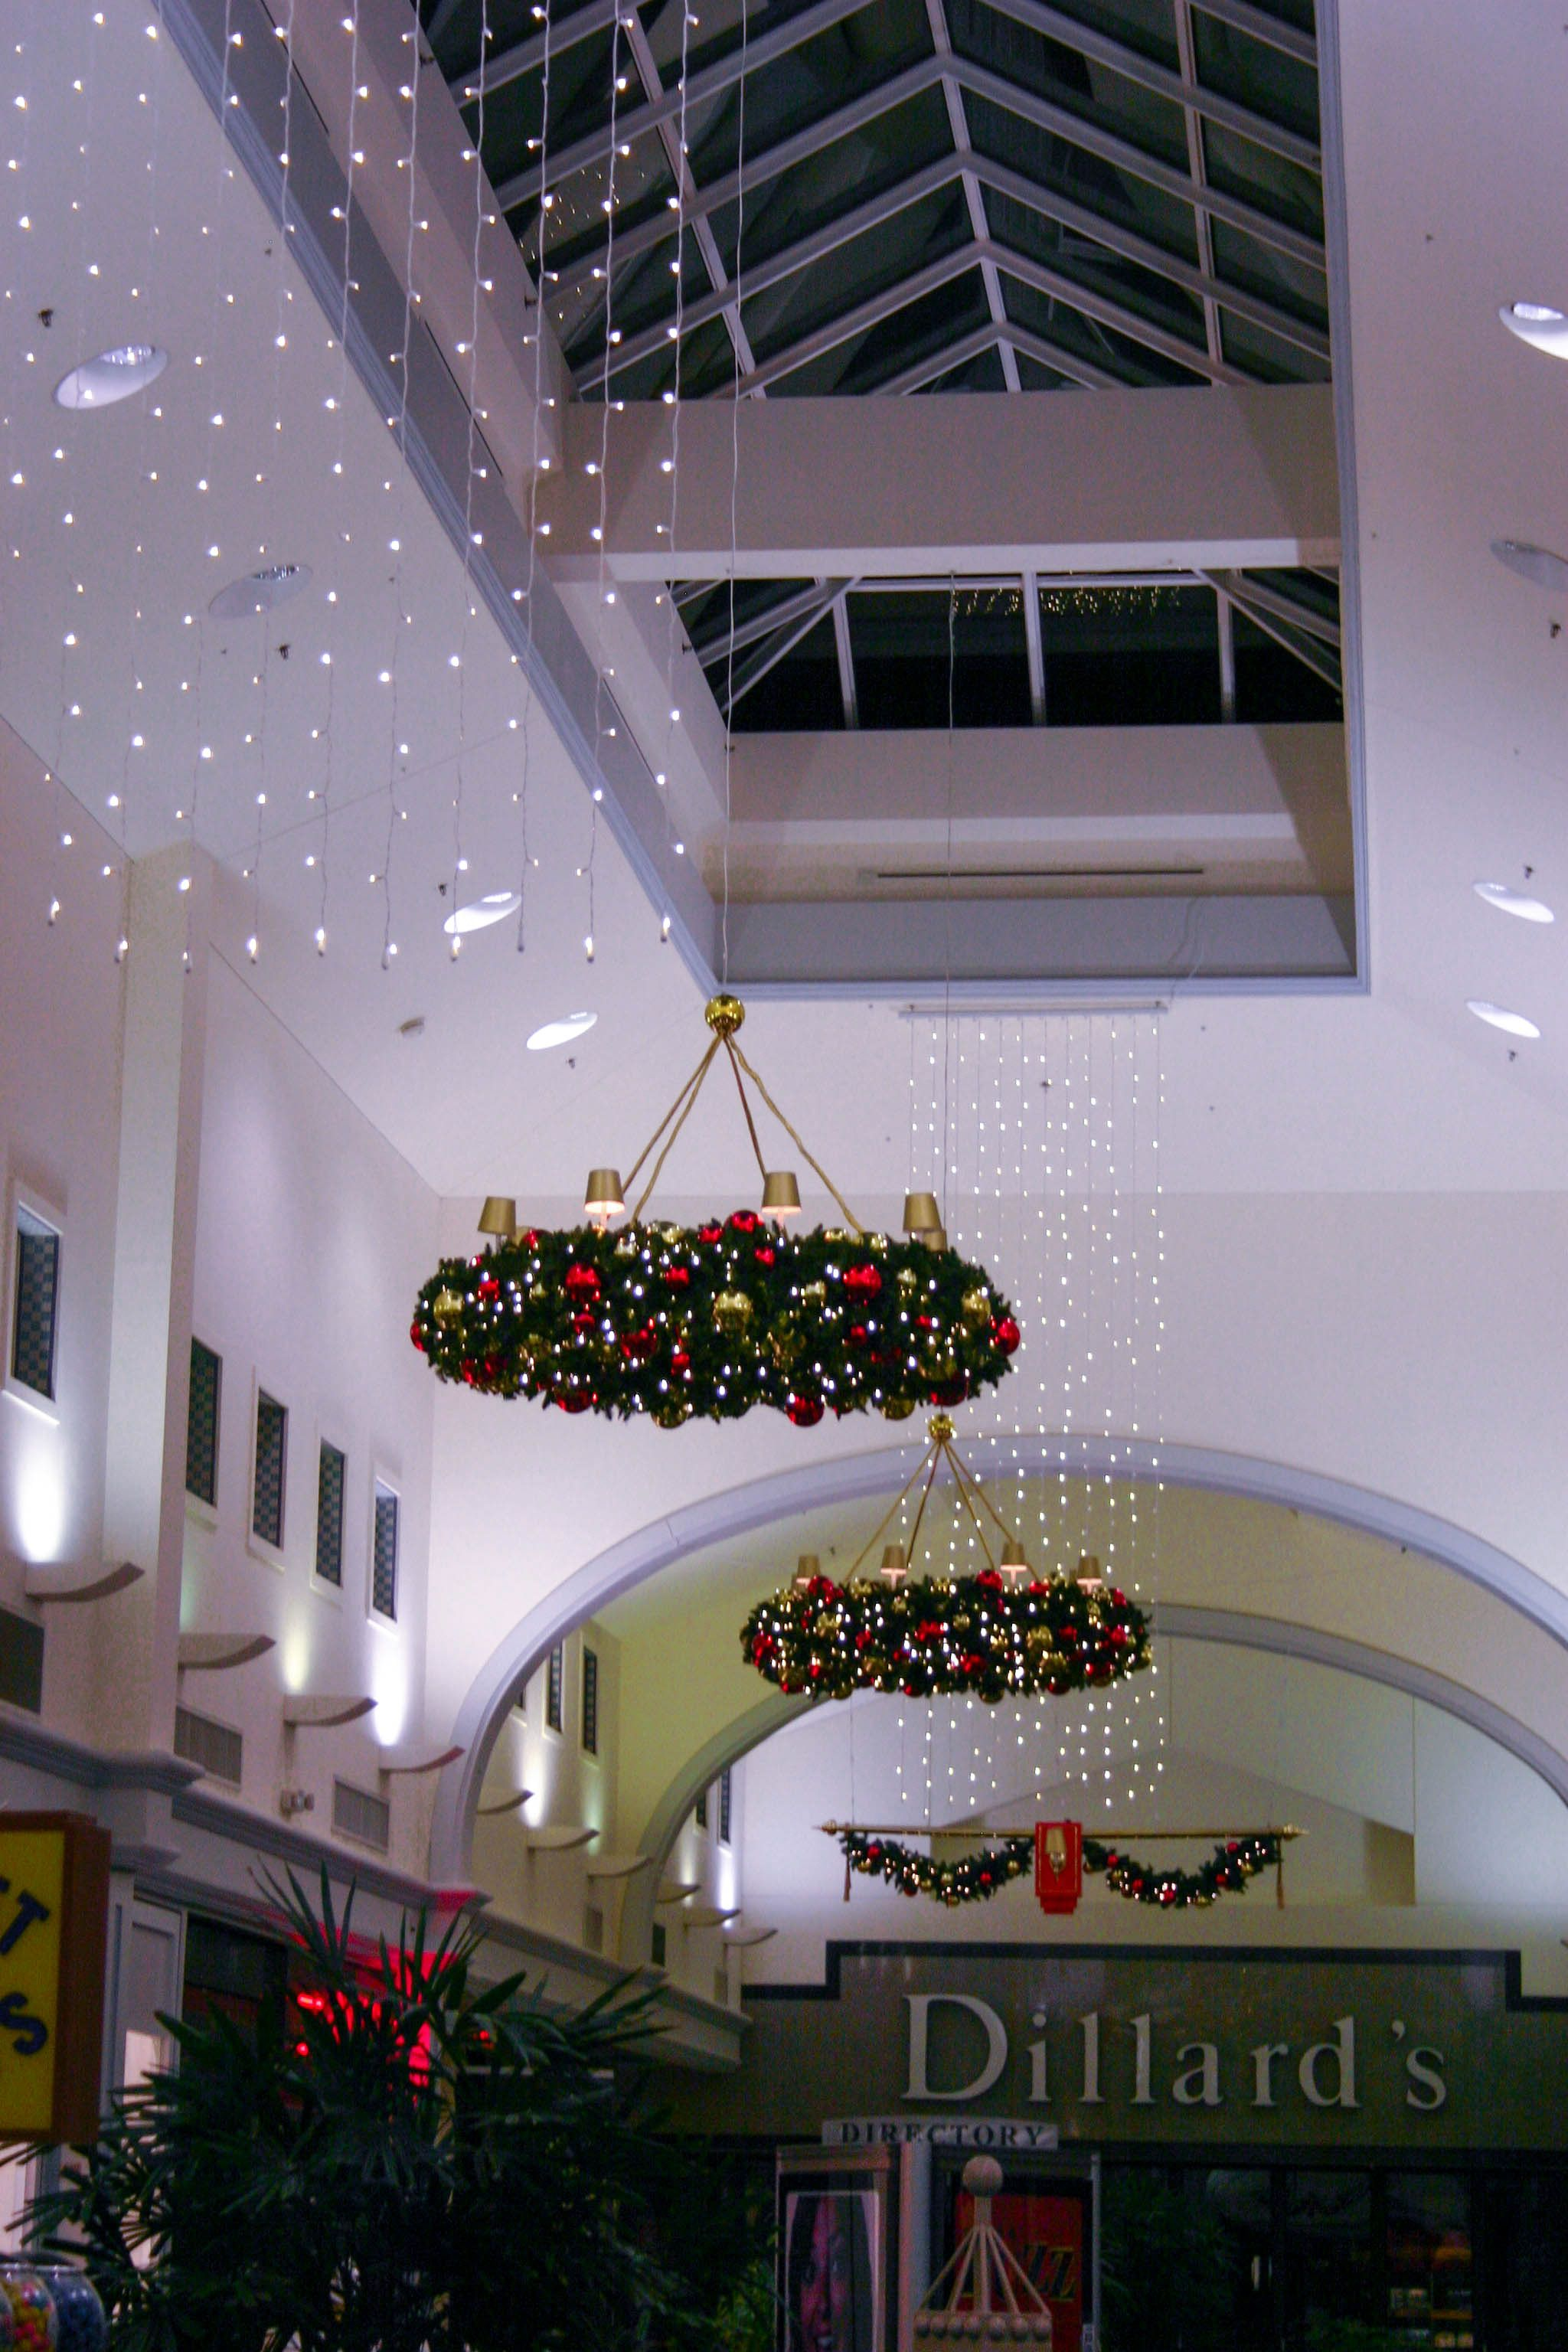 Ceiling Decorations For Bedroom: #Christmas Wreaths Adorn The Ceiling. For More Information